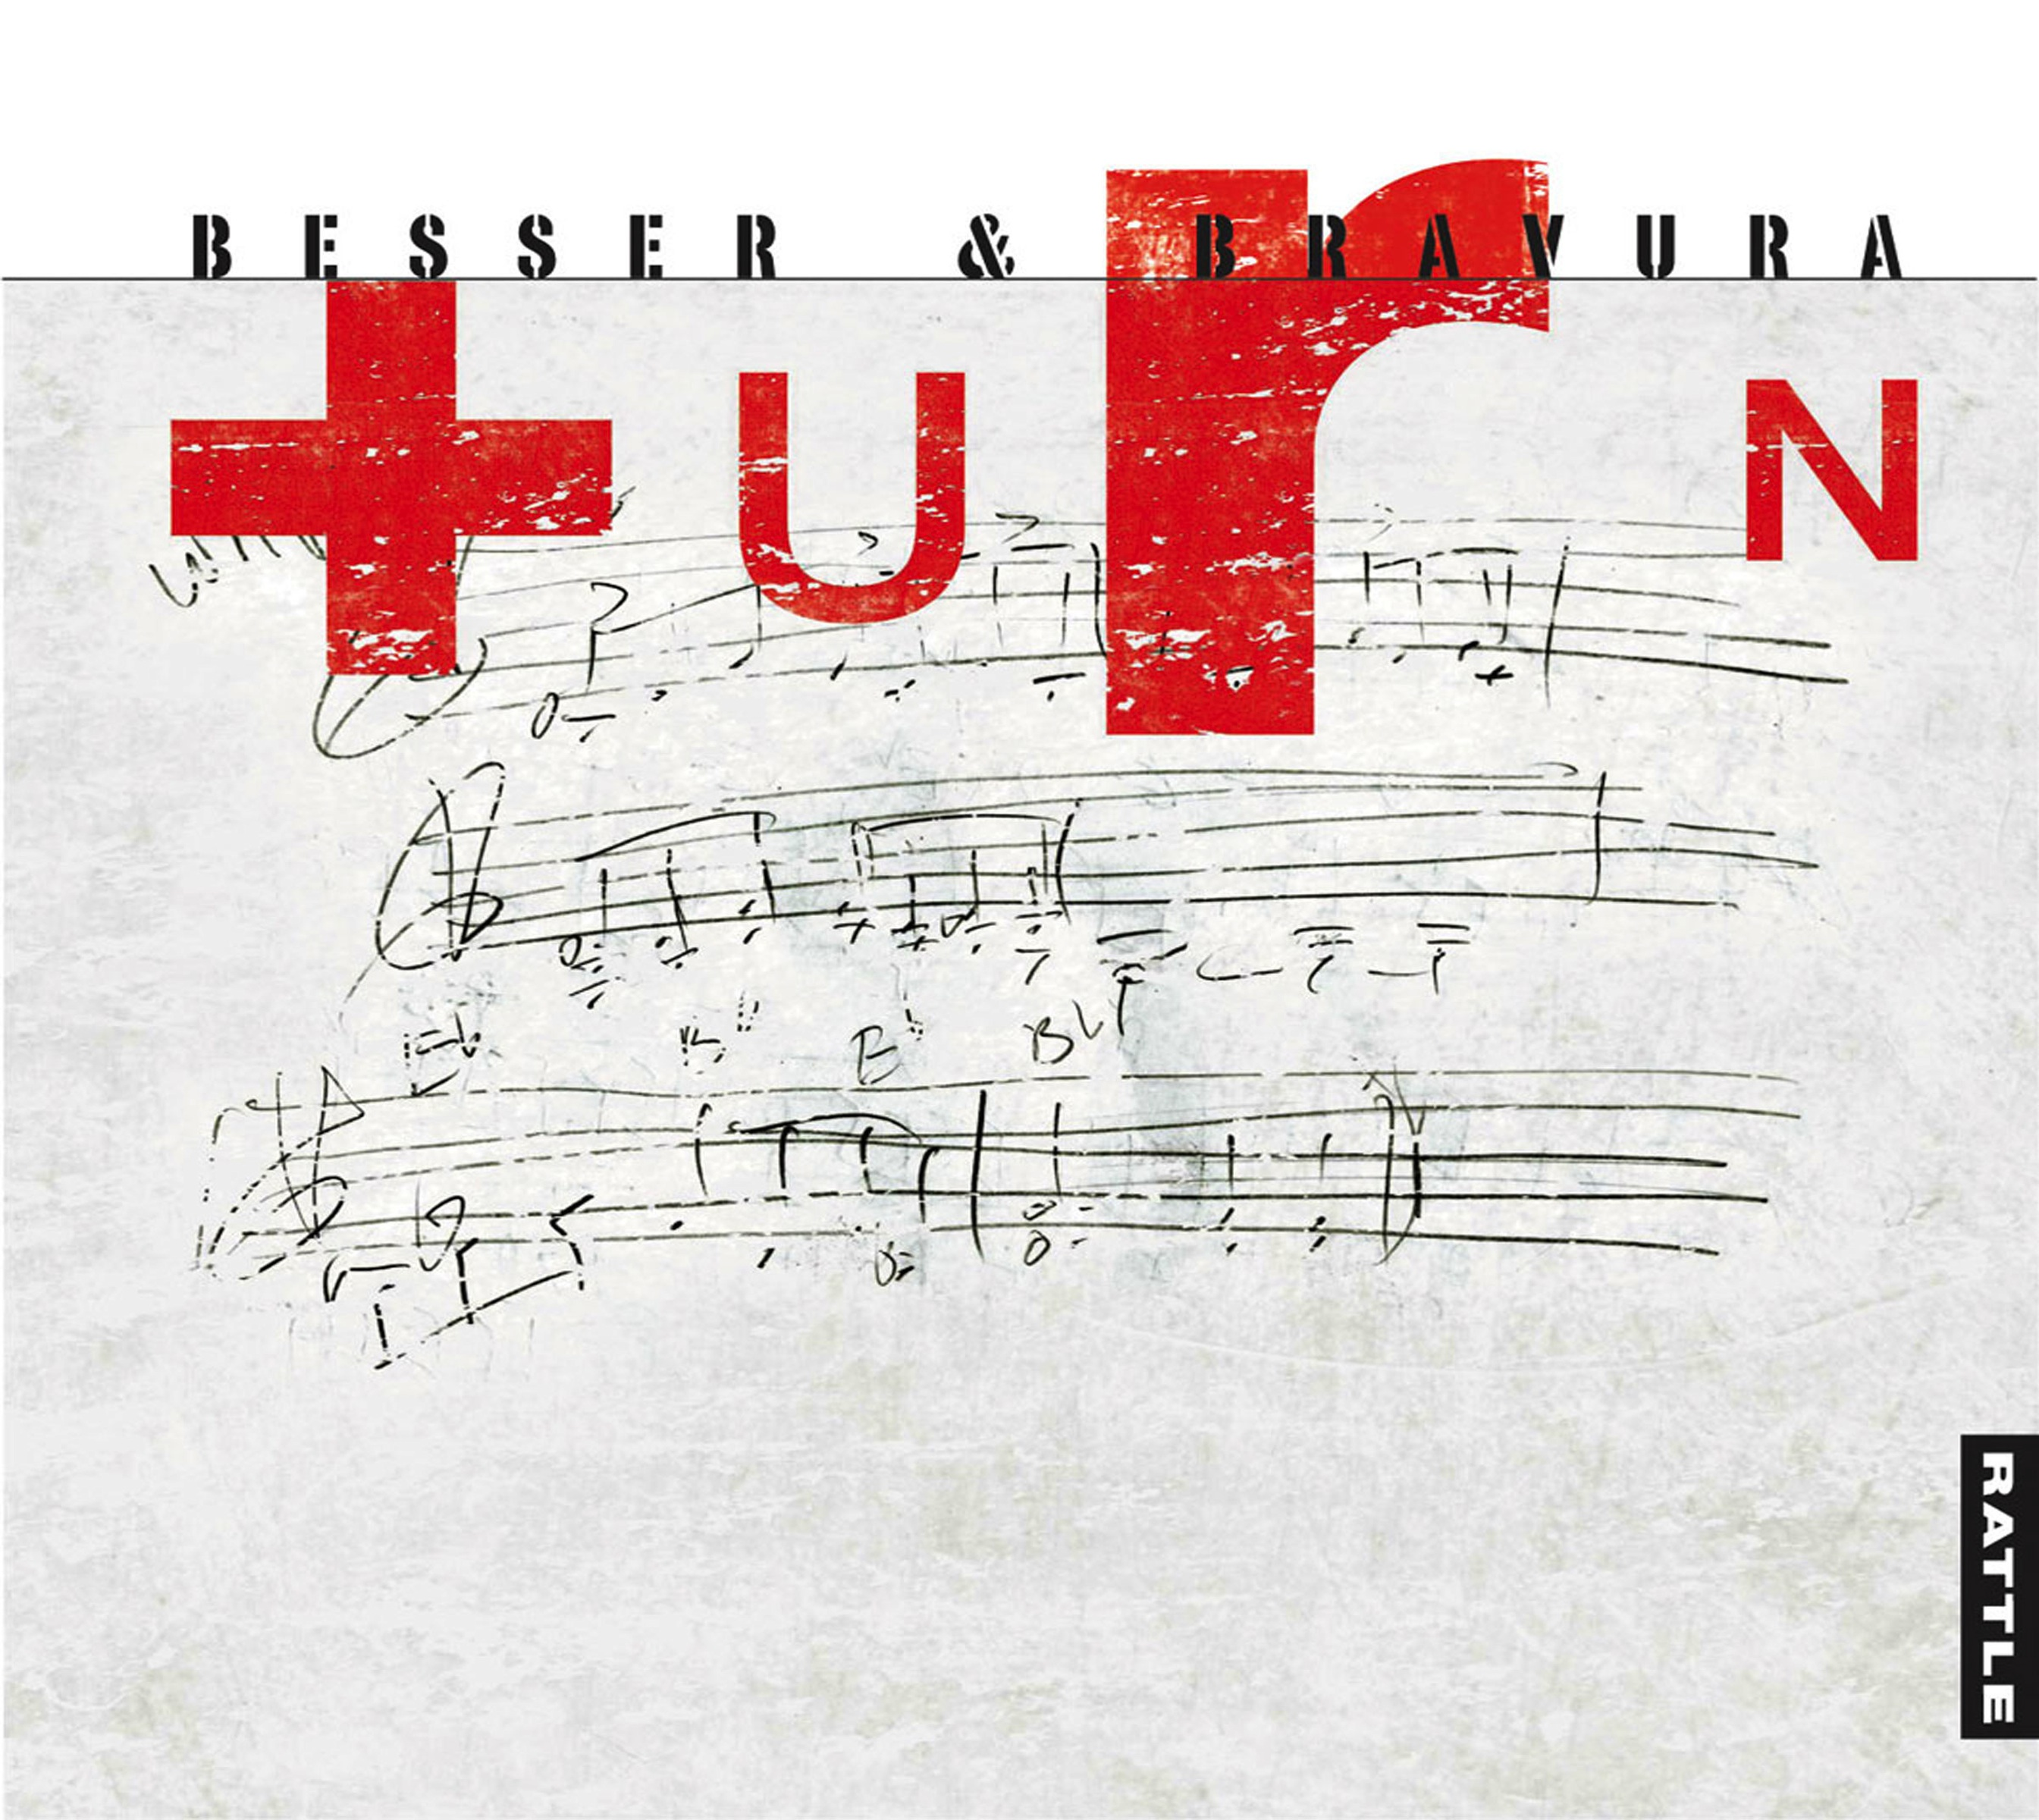 Besser & Bravura | Turn - downloadable MP3 ALBUM